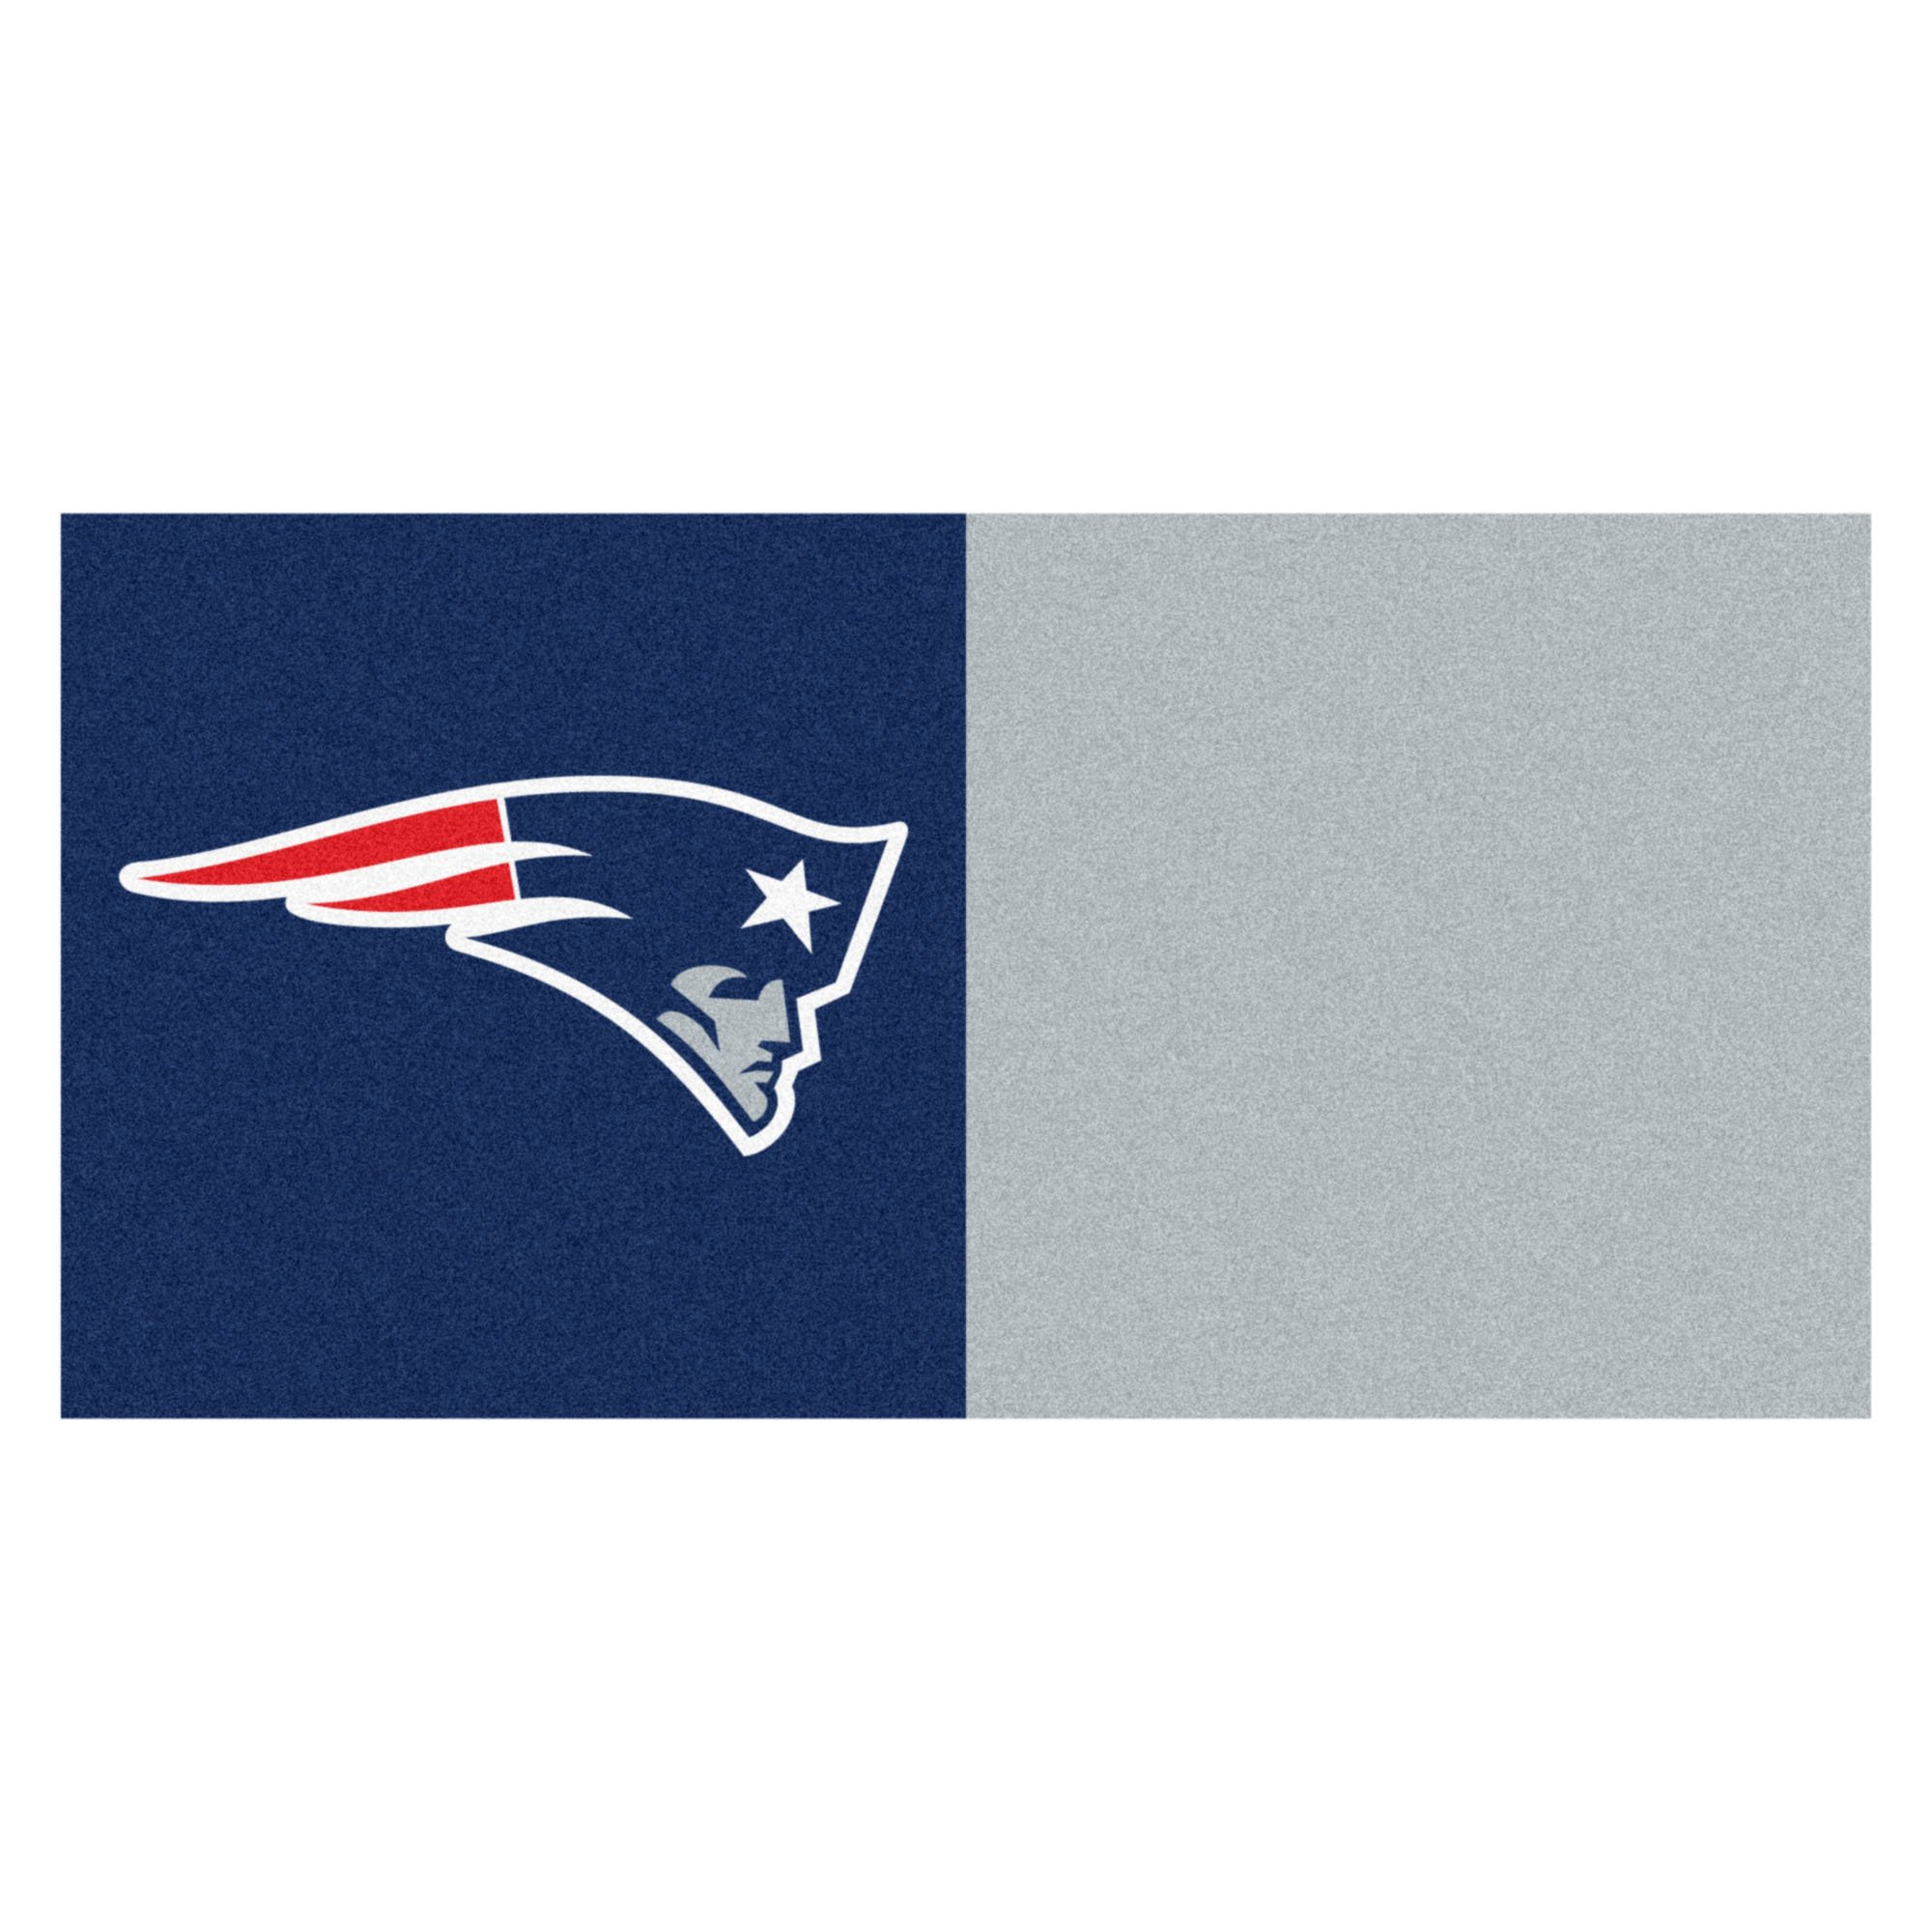 FANMATS NFL New England Patriots Nylon Face Team Carpet Tiles by Fanmats